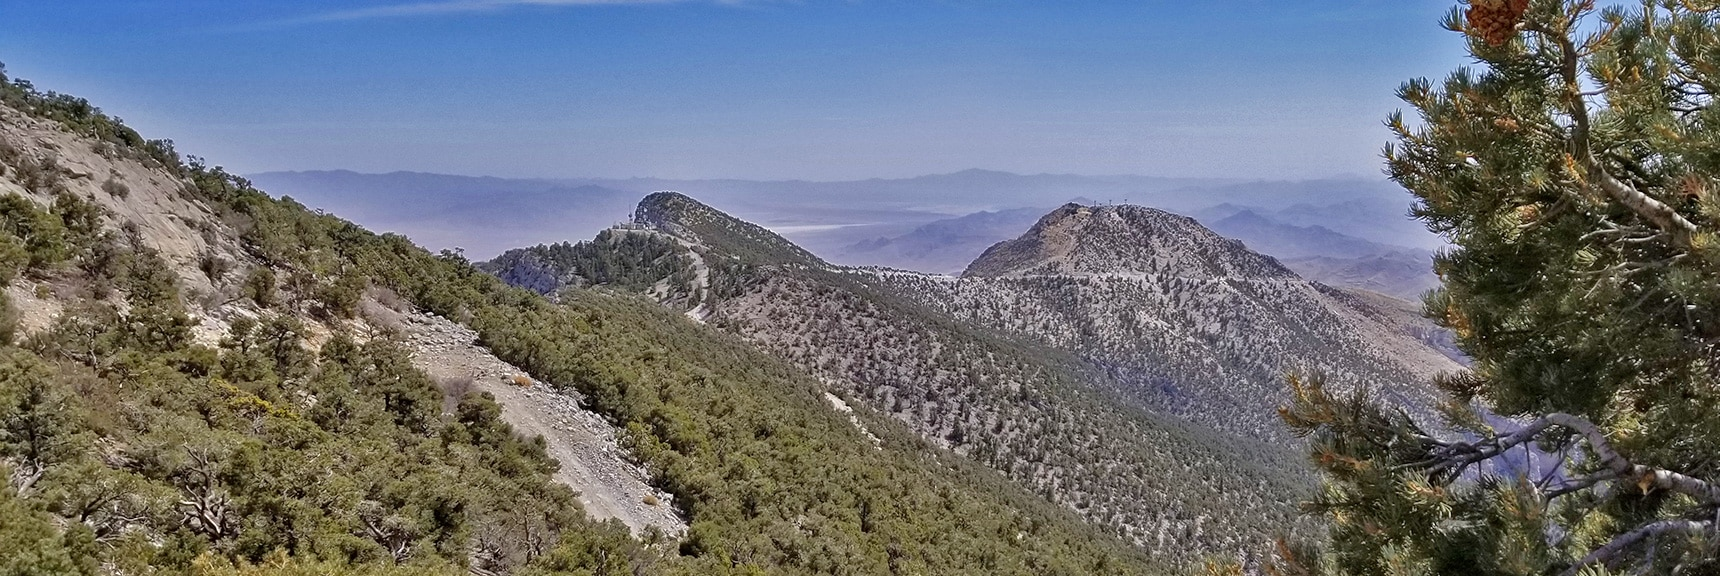 Mid Summit and South Summit Viewed from the North Summit. | Potosi Mountain Spring Mountains Nevada